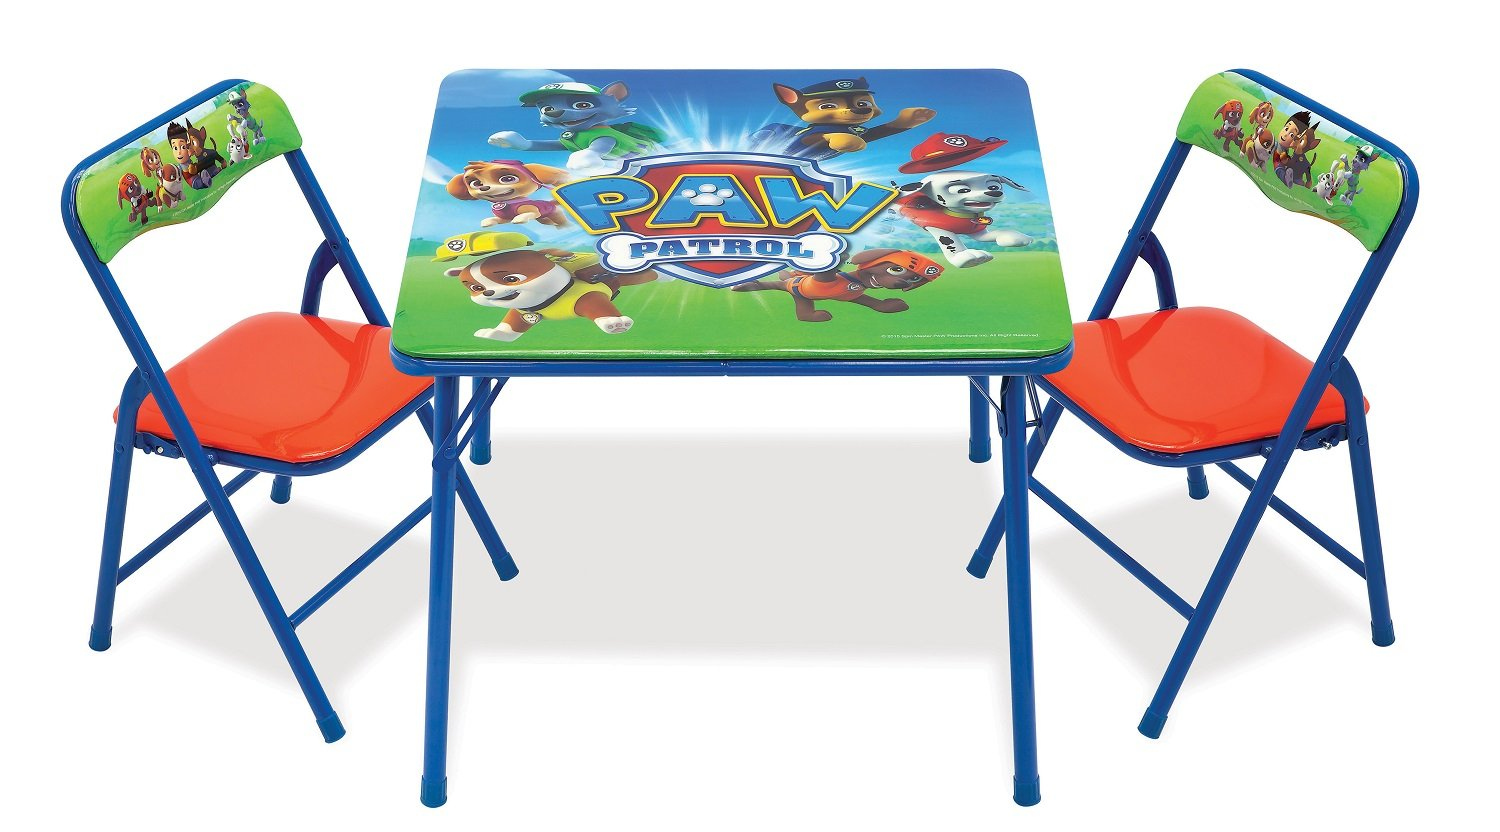 paw patrol activity table sets for kids and toddlers work. Black Bedroom Furniture Sets. Home Design Ideas